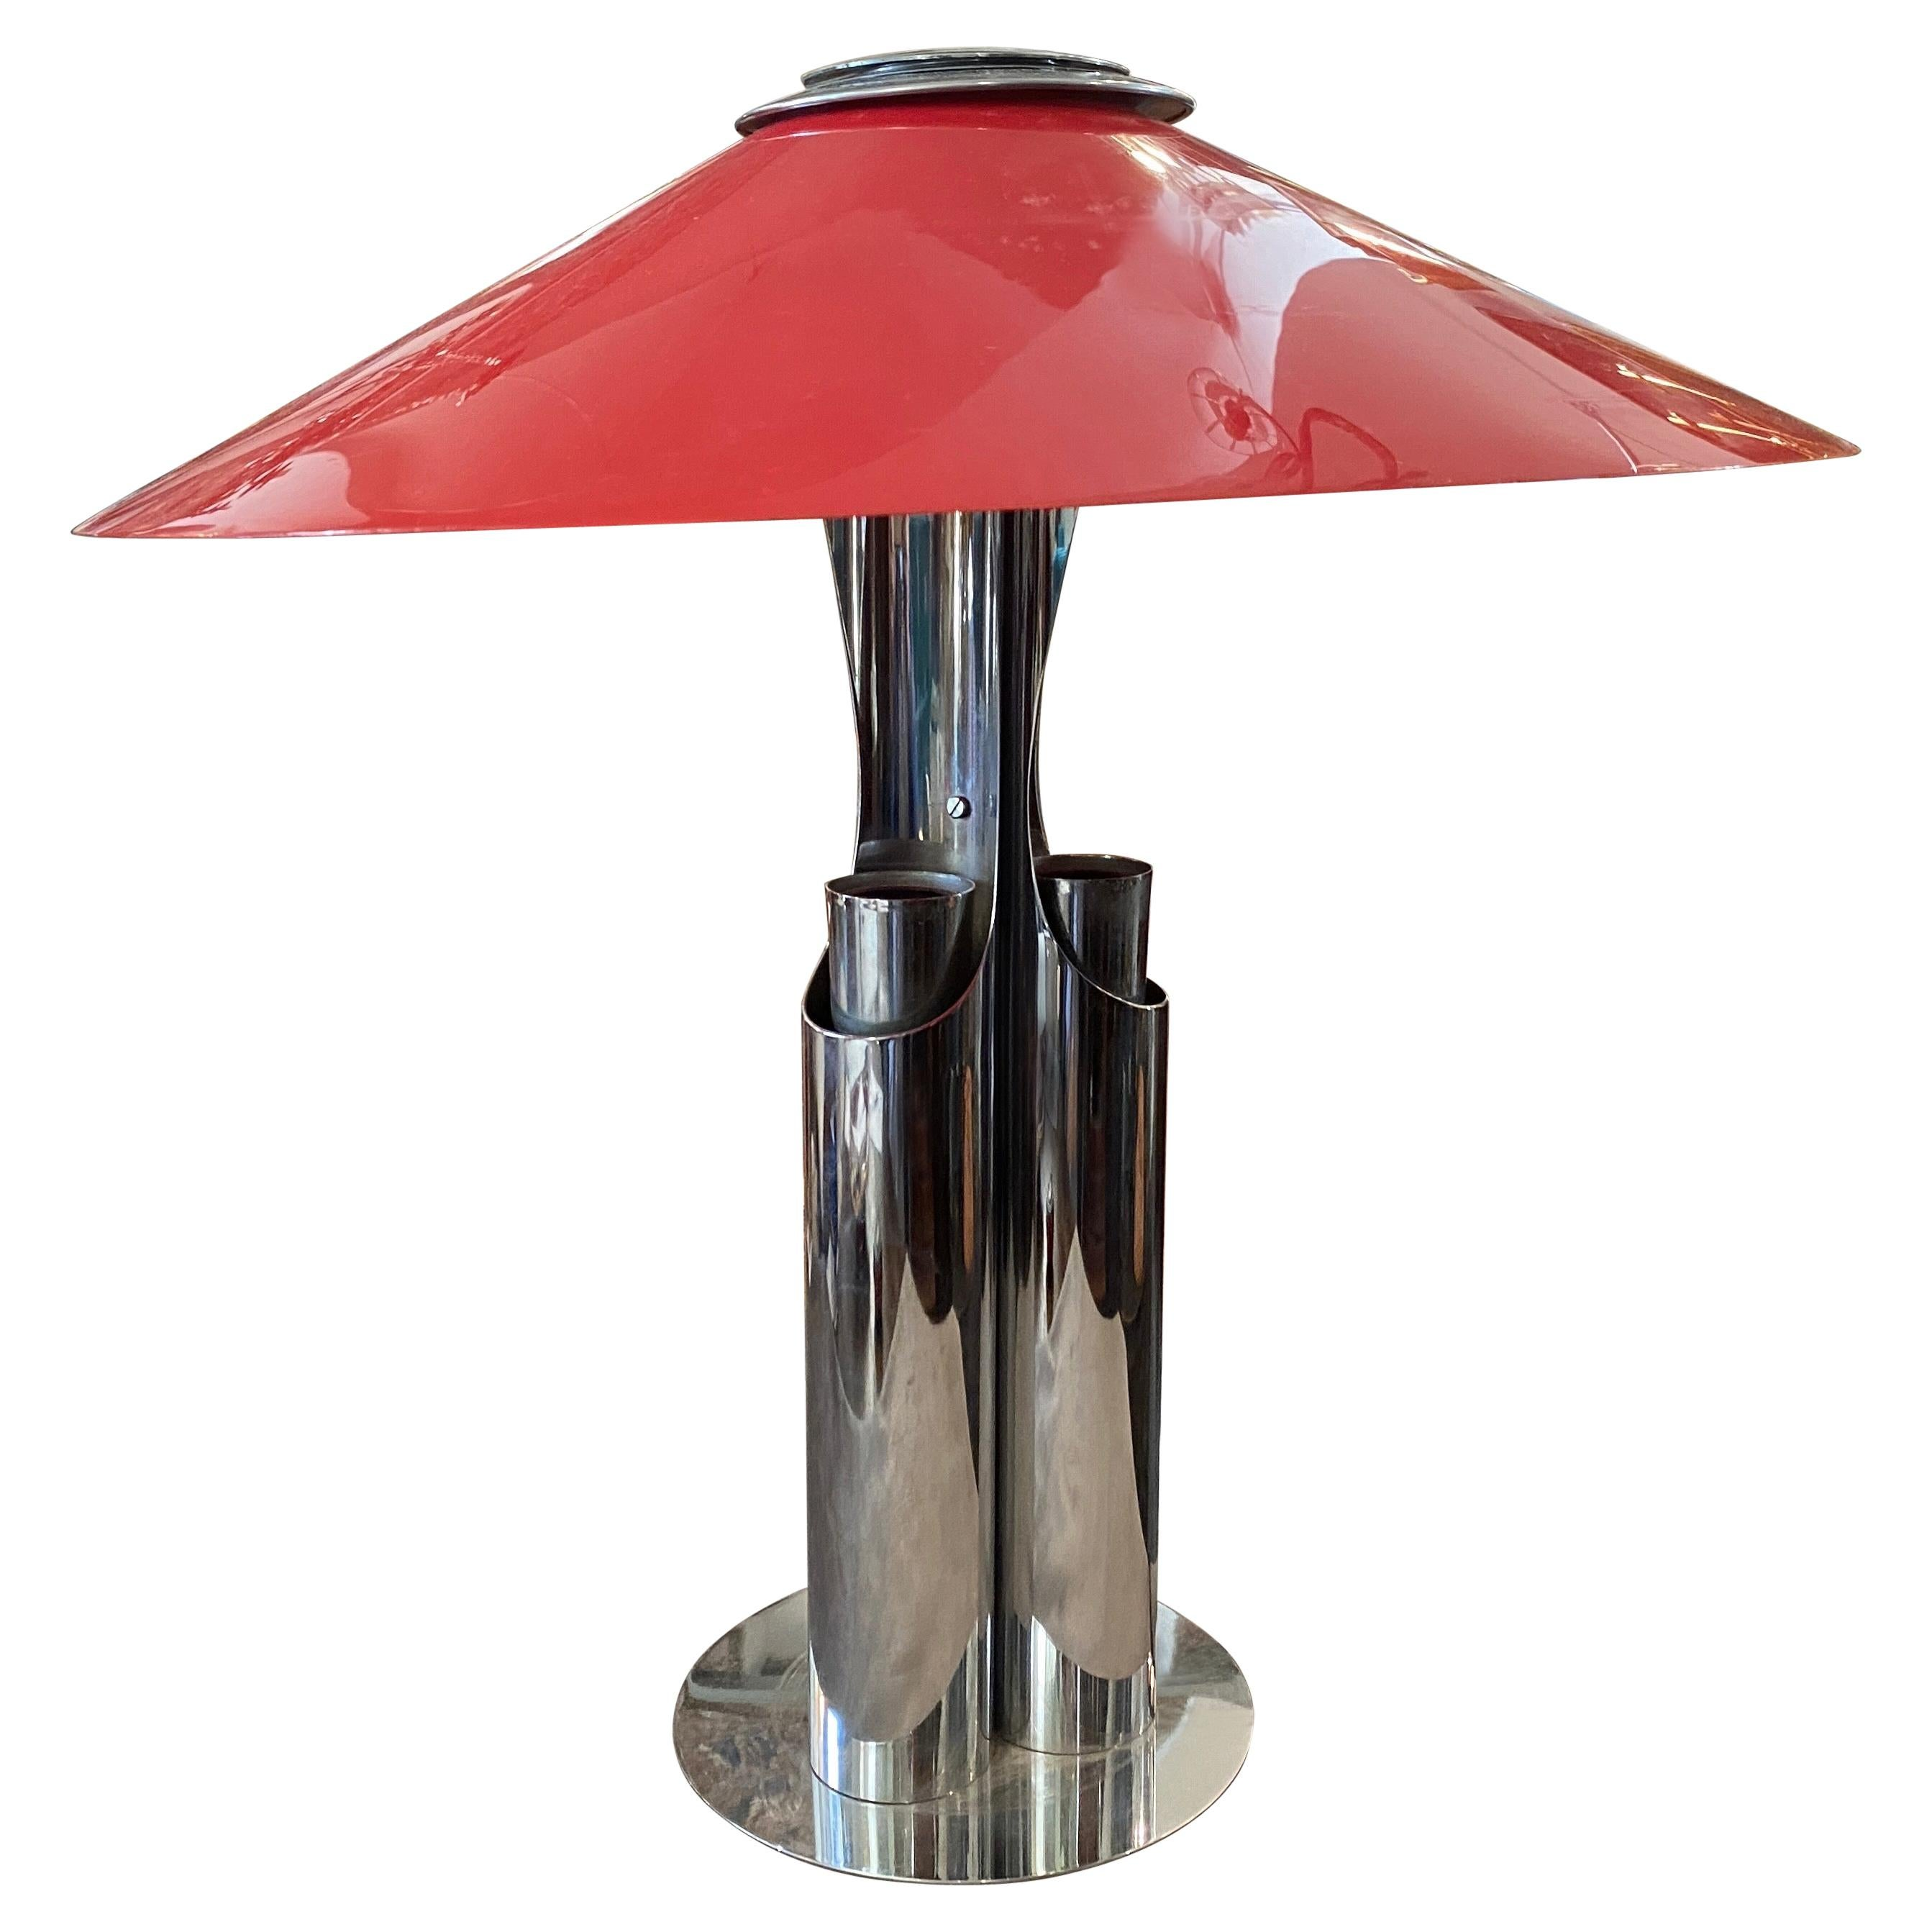 1970s Chromed Metal And Red Acrylic Space Age Italian Table Lamp